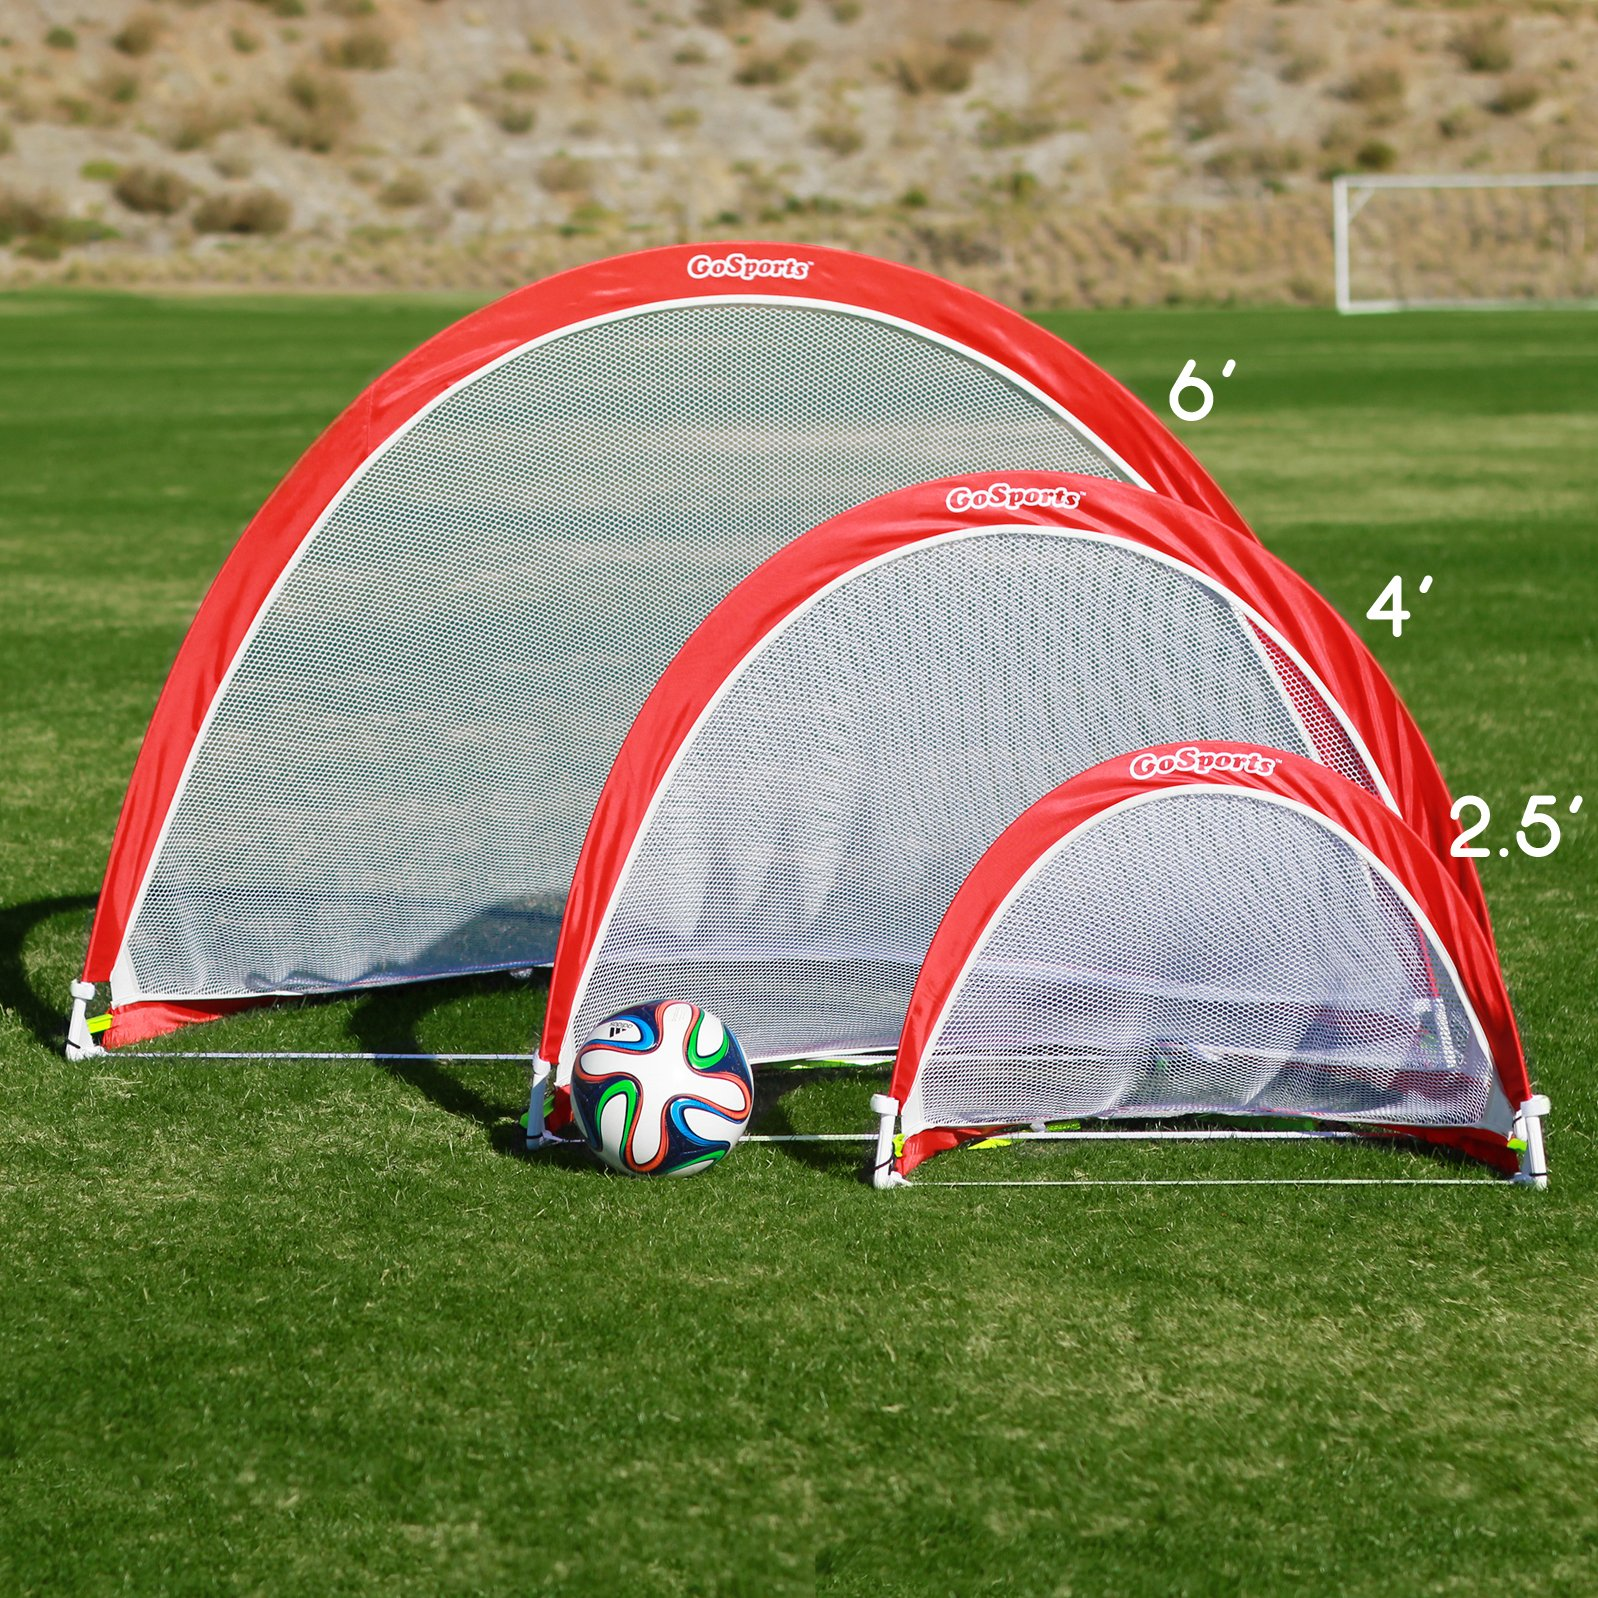 GoSports Portable Pop-Up Soccer Goal (Set of 2), Red/White, 4' by GoSports (Image #2)